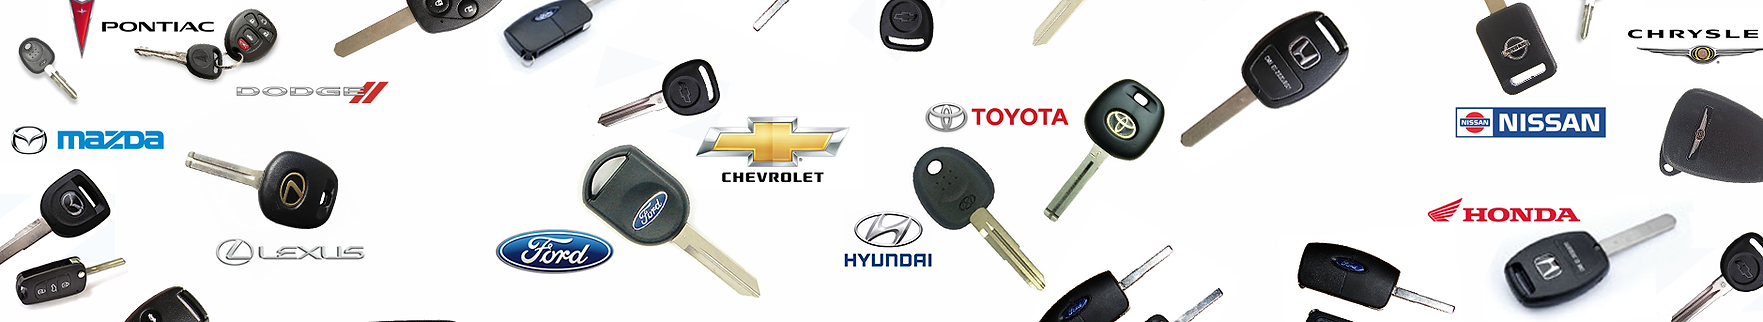 Car Key Cutting in hunslet and pudsey, Leeds